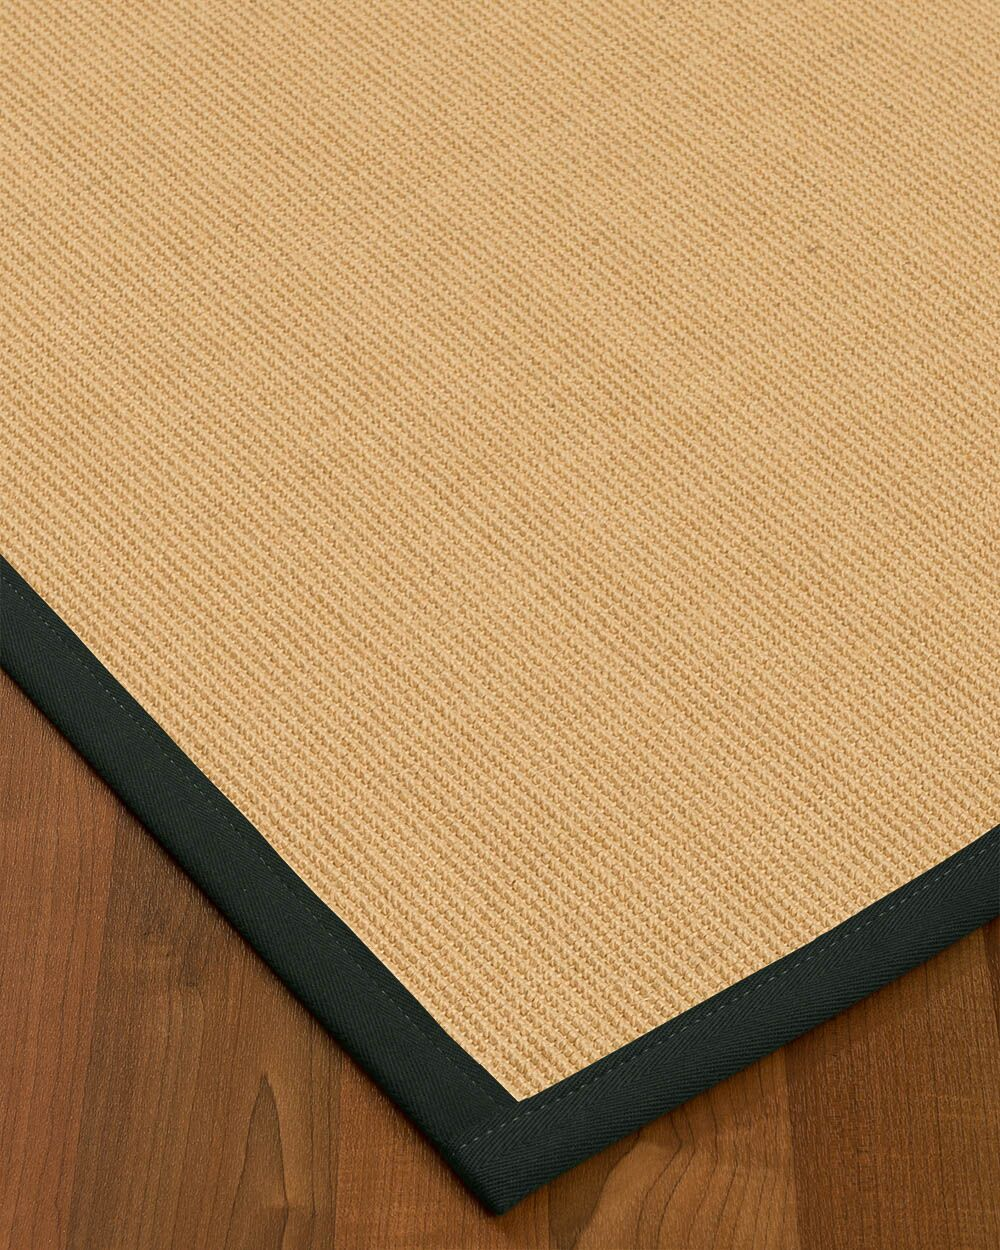 Rupendra Hand Woven Beige Area Rug Rug Size: Rectangle 8' X 10'